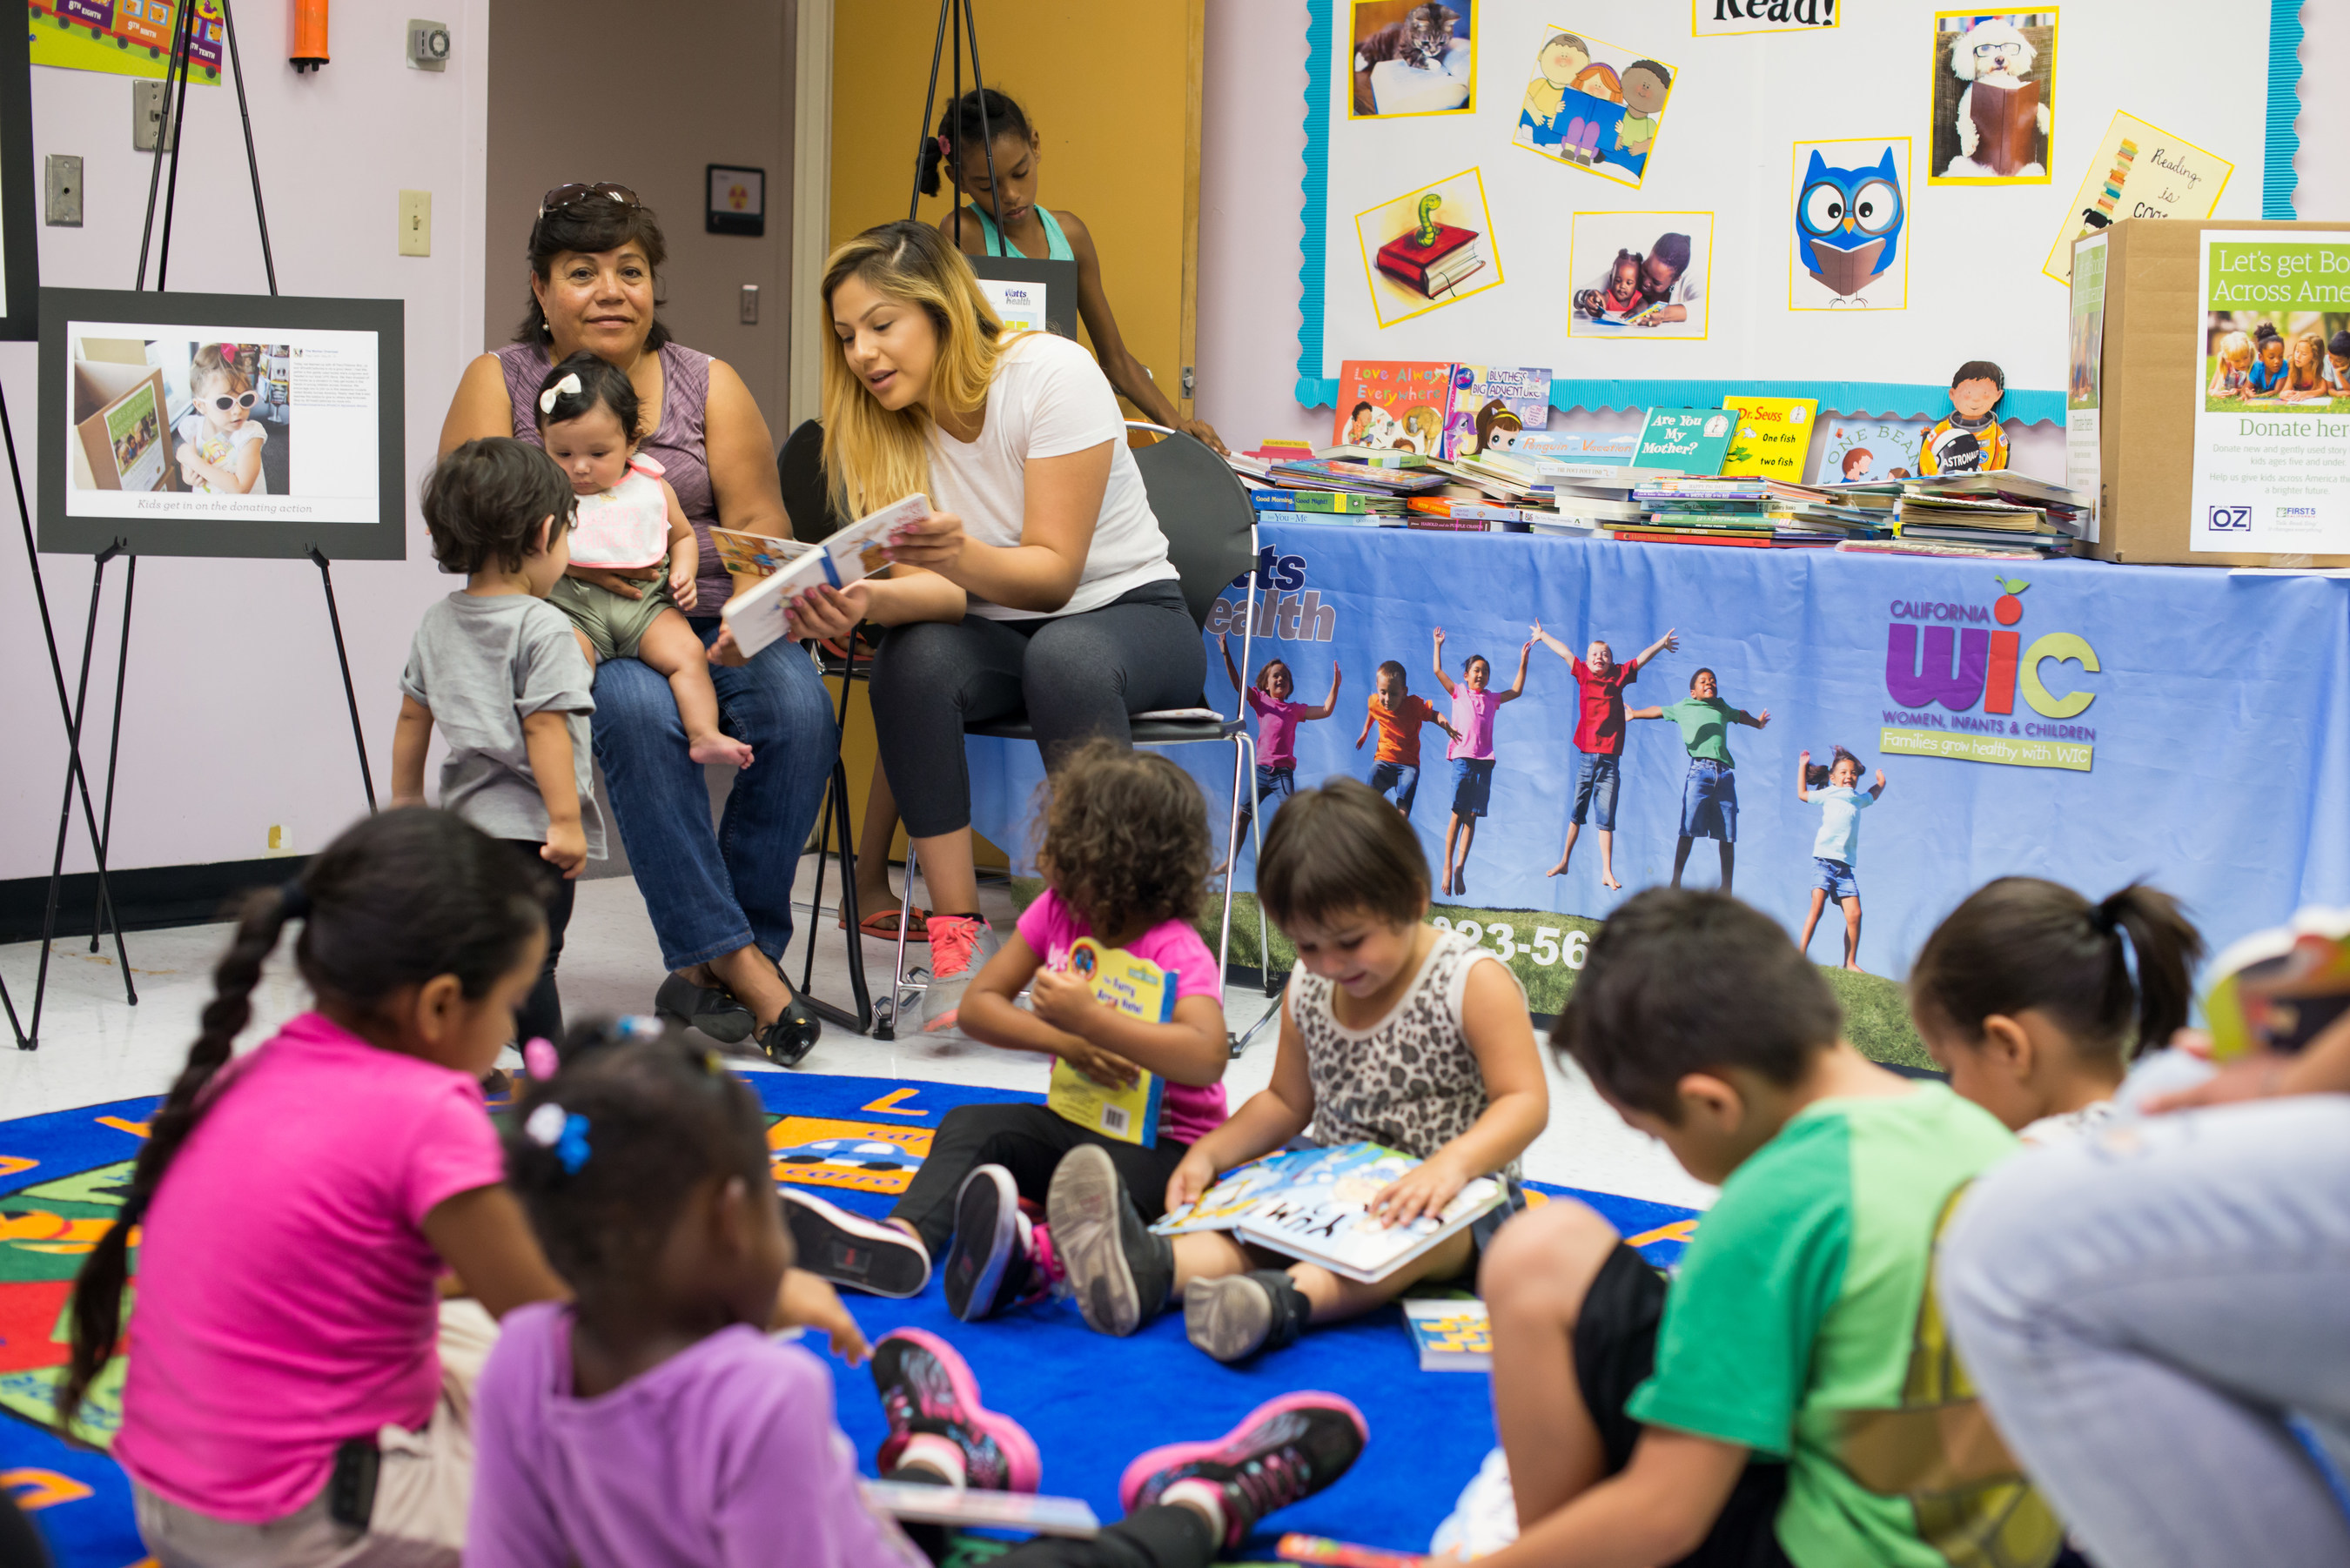 Children and families at the Watts Healthcare Corporation: WIC in Watts, CA receive their book donations as part of the nationwide Books Across America book drive that collected nearly 45,000 children's book donations.